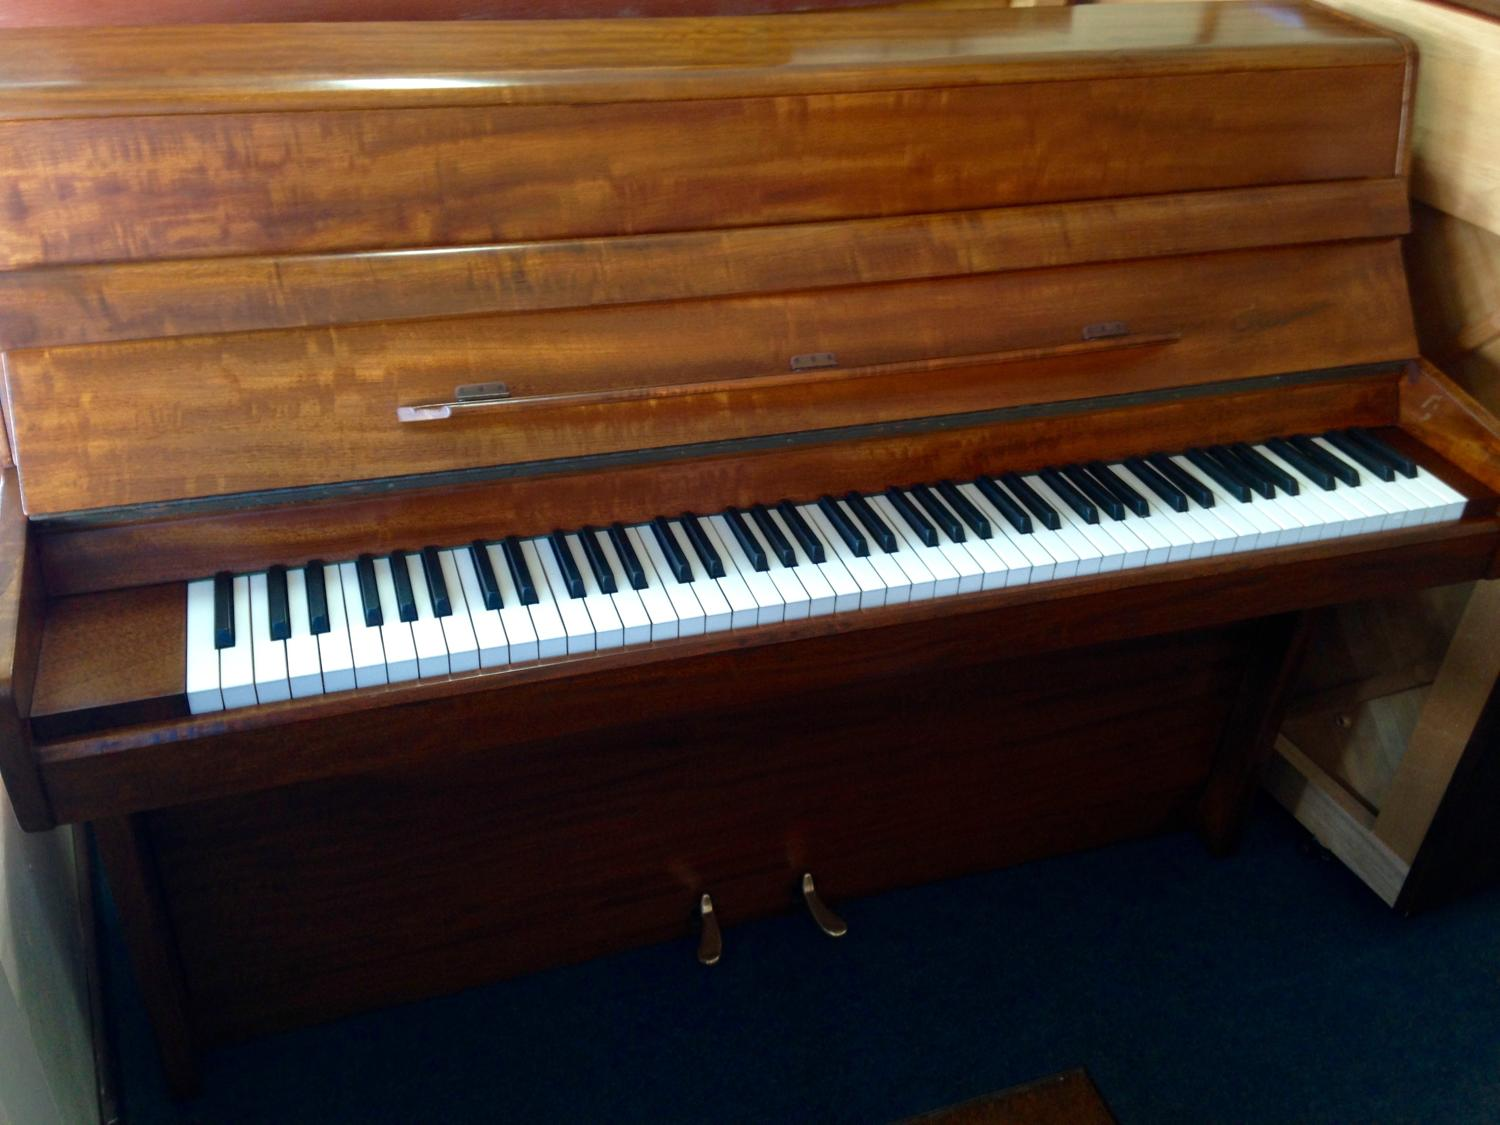 Danemann upright piano for sale